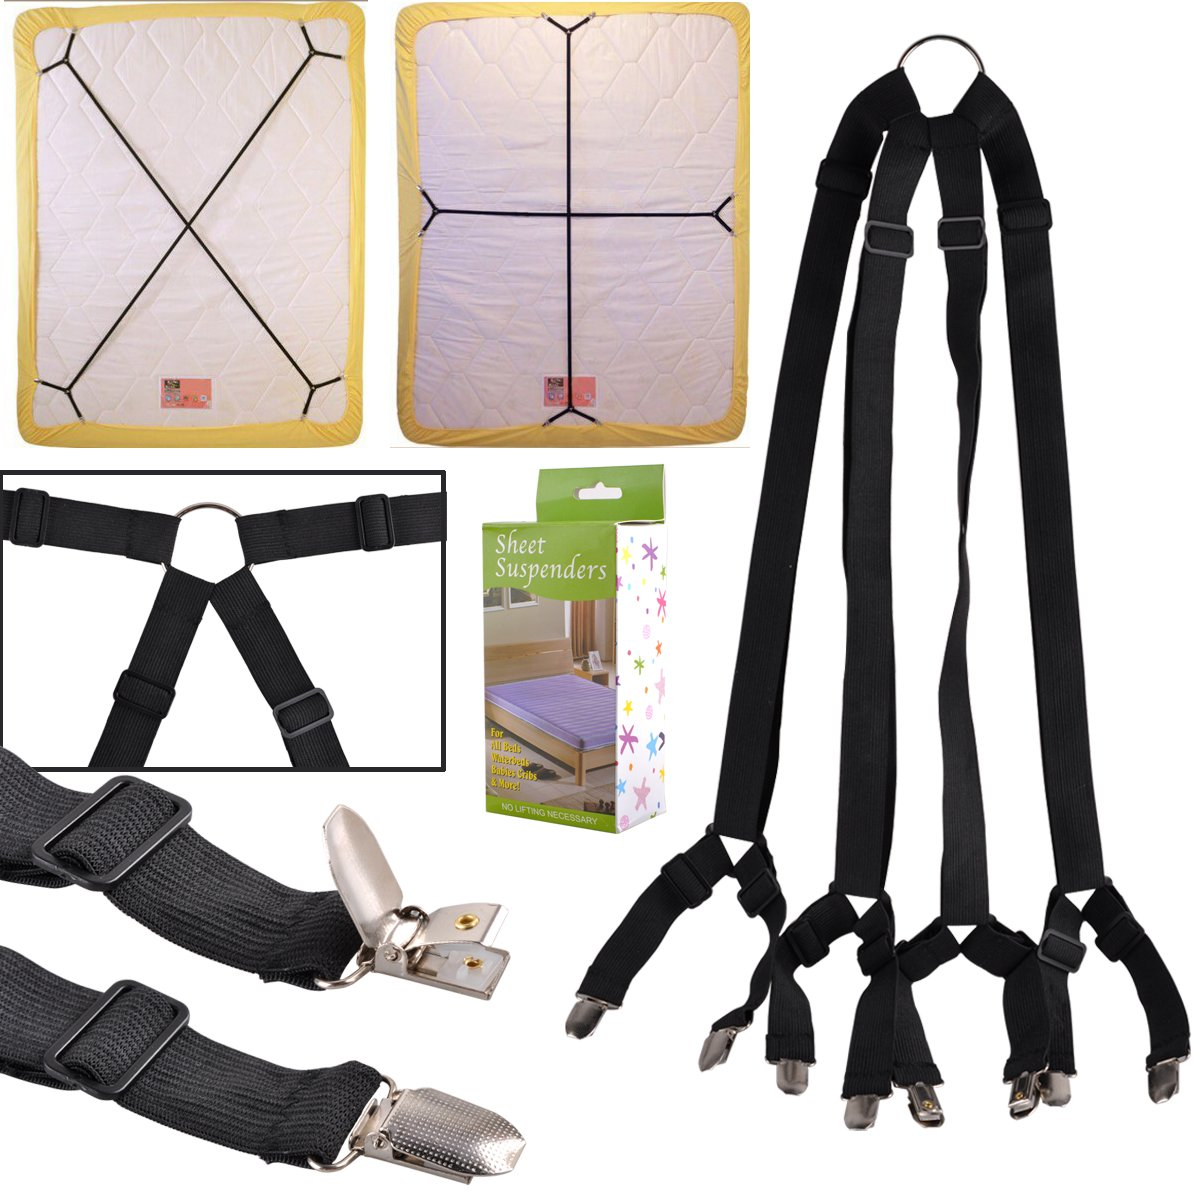 CRISSCROSS SHEET GRIPPERS STRAPS FASTENERS HOLD GRIPS ELASTIC CLIPS GRIPPER